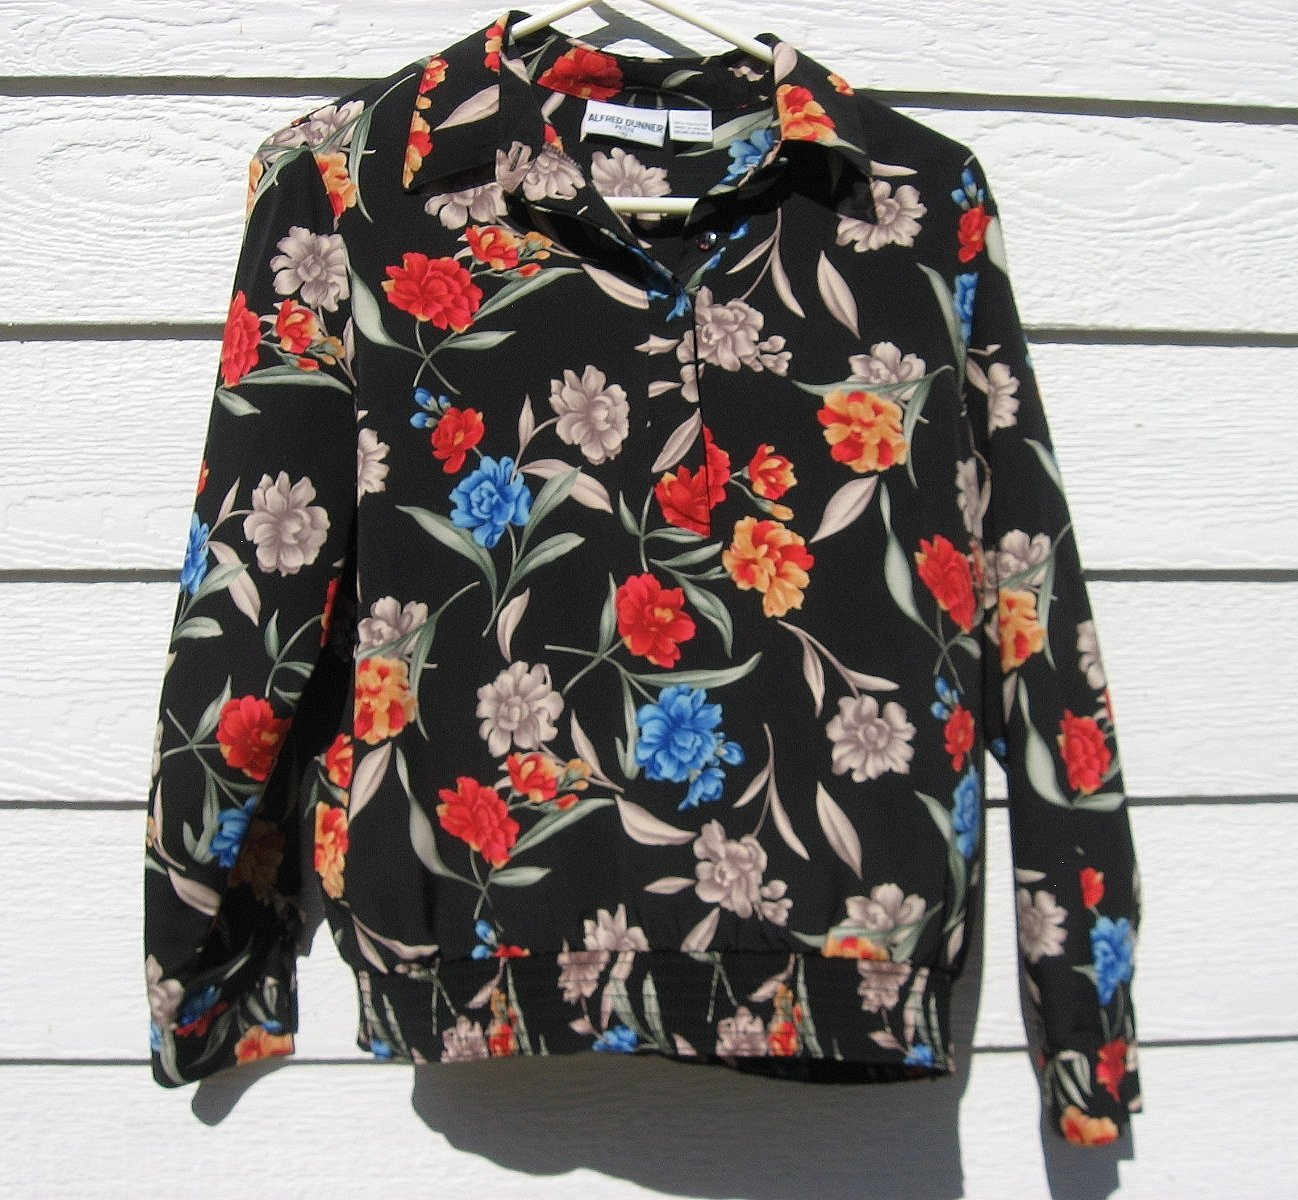 Alfred Dunner Pull Over Top 10 40 Chest Black Floral Elastic Waistband CLEARANCE